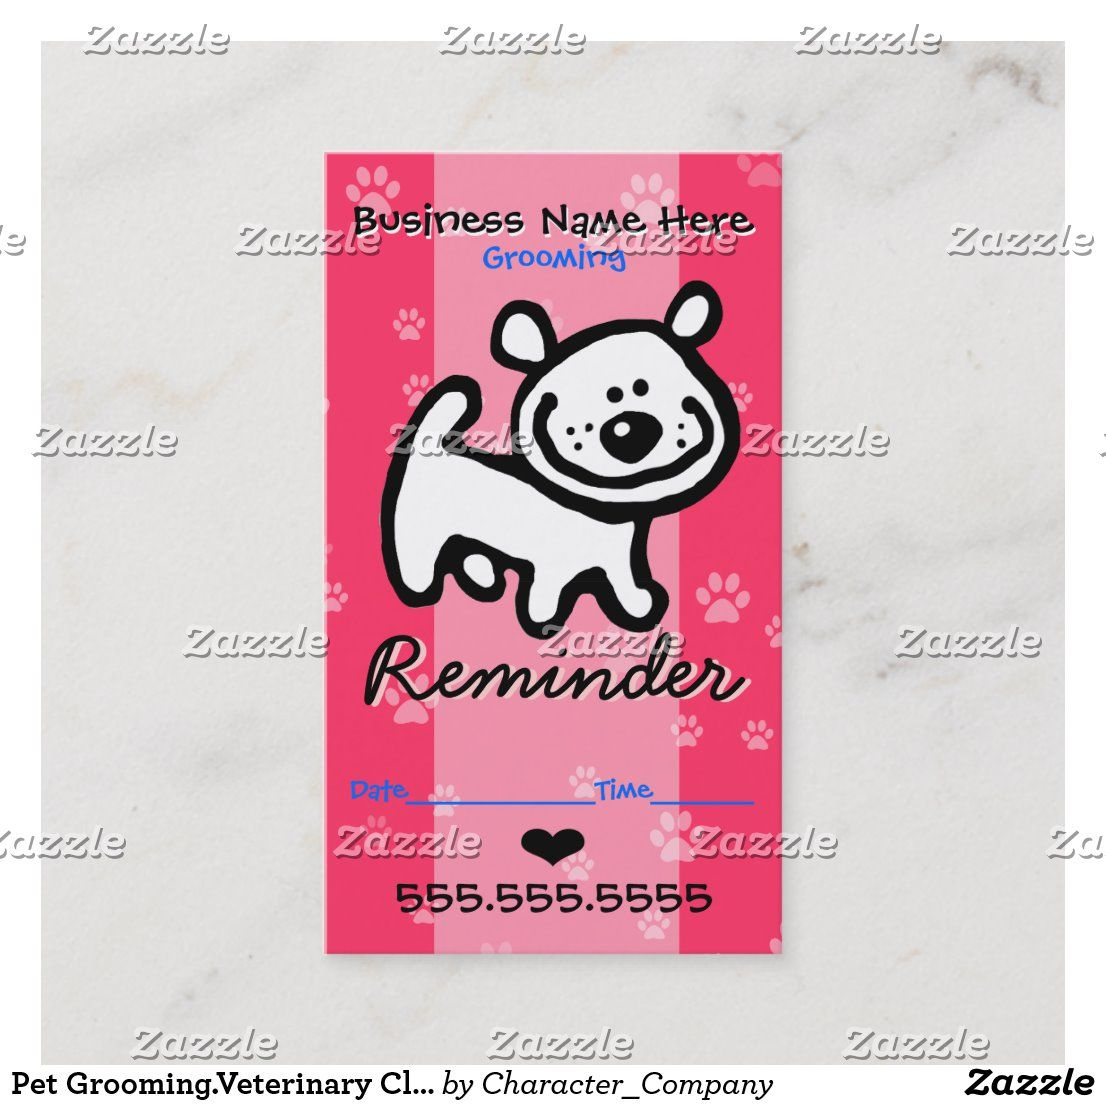 Pet Grooming Veterinary Clinic Dog Appointment Zazzle Com In 2020 Paw Print Design Pets White Puppies